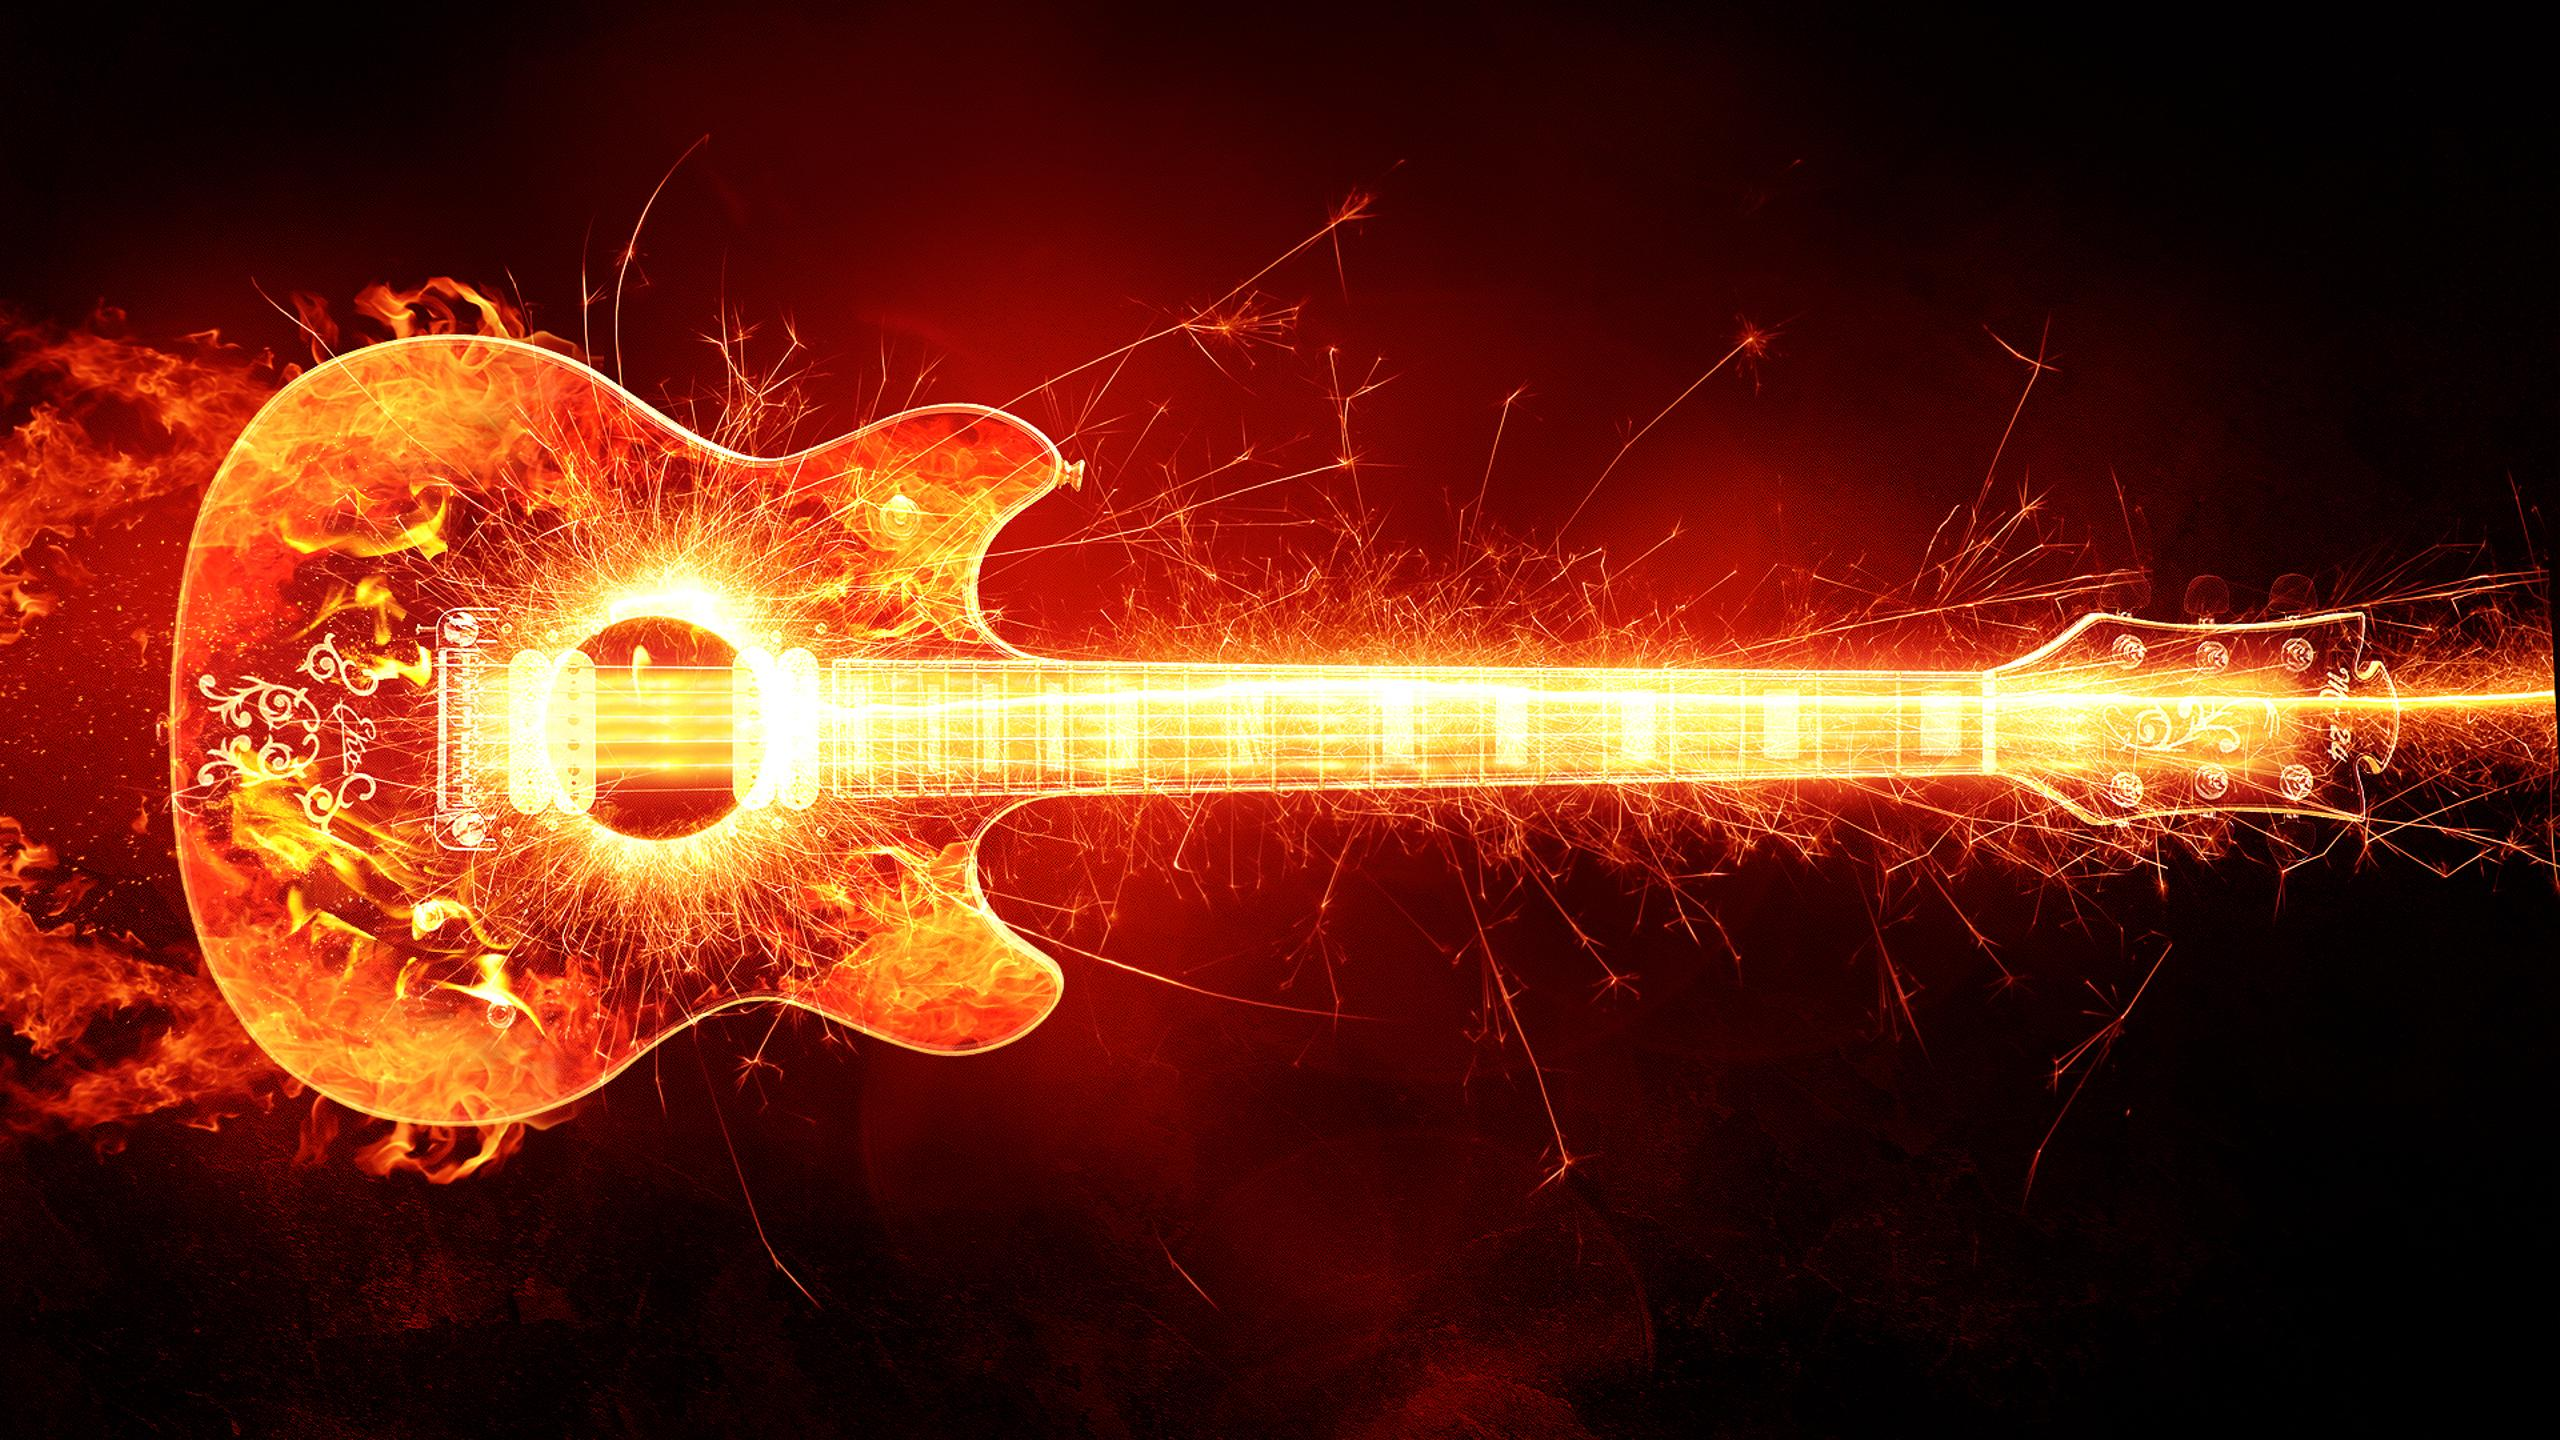 guitar with fire and sparks wallpaper download 2560x1440